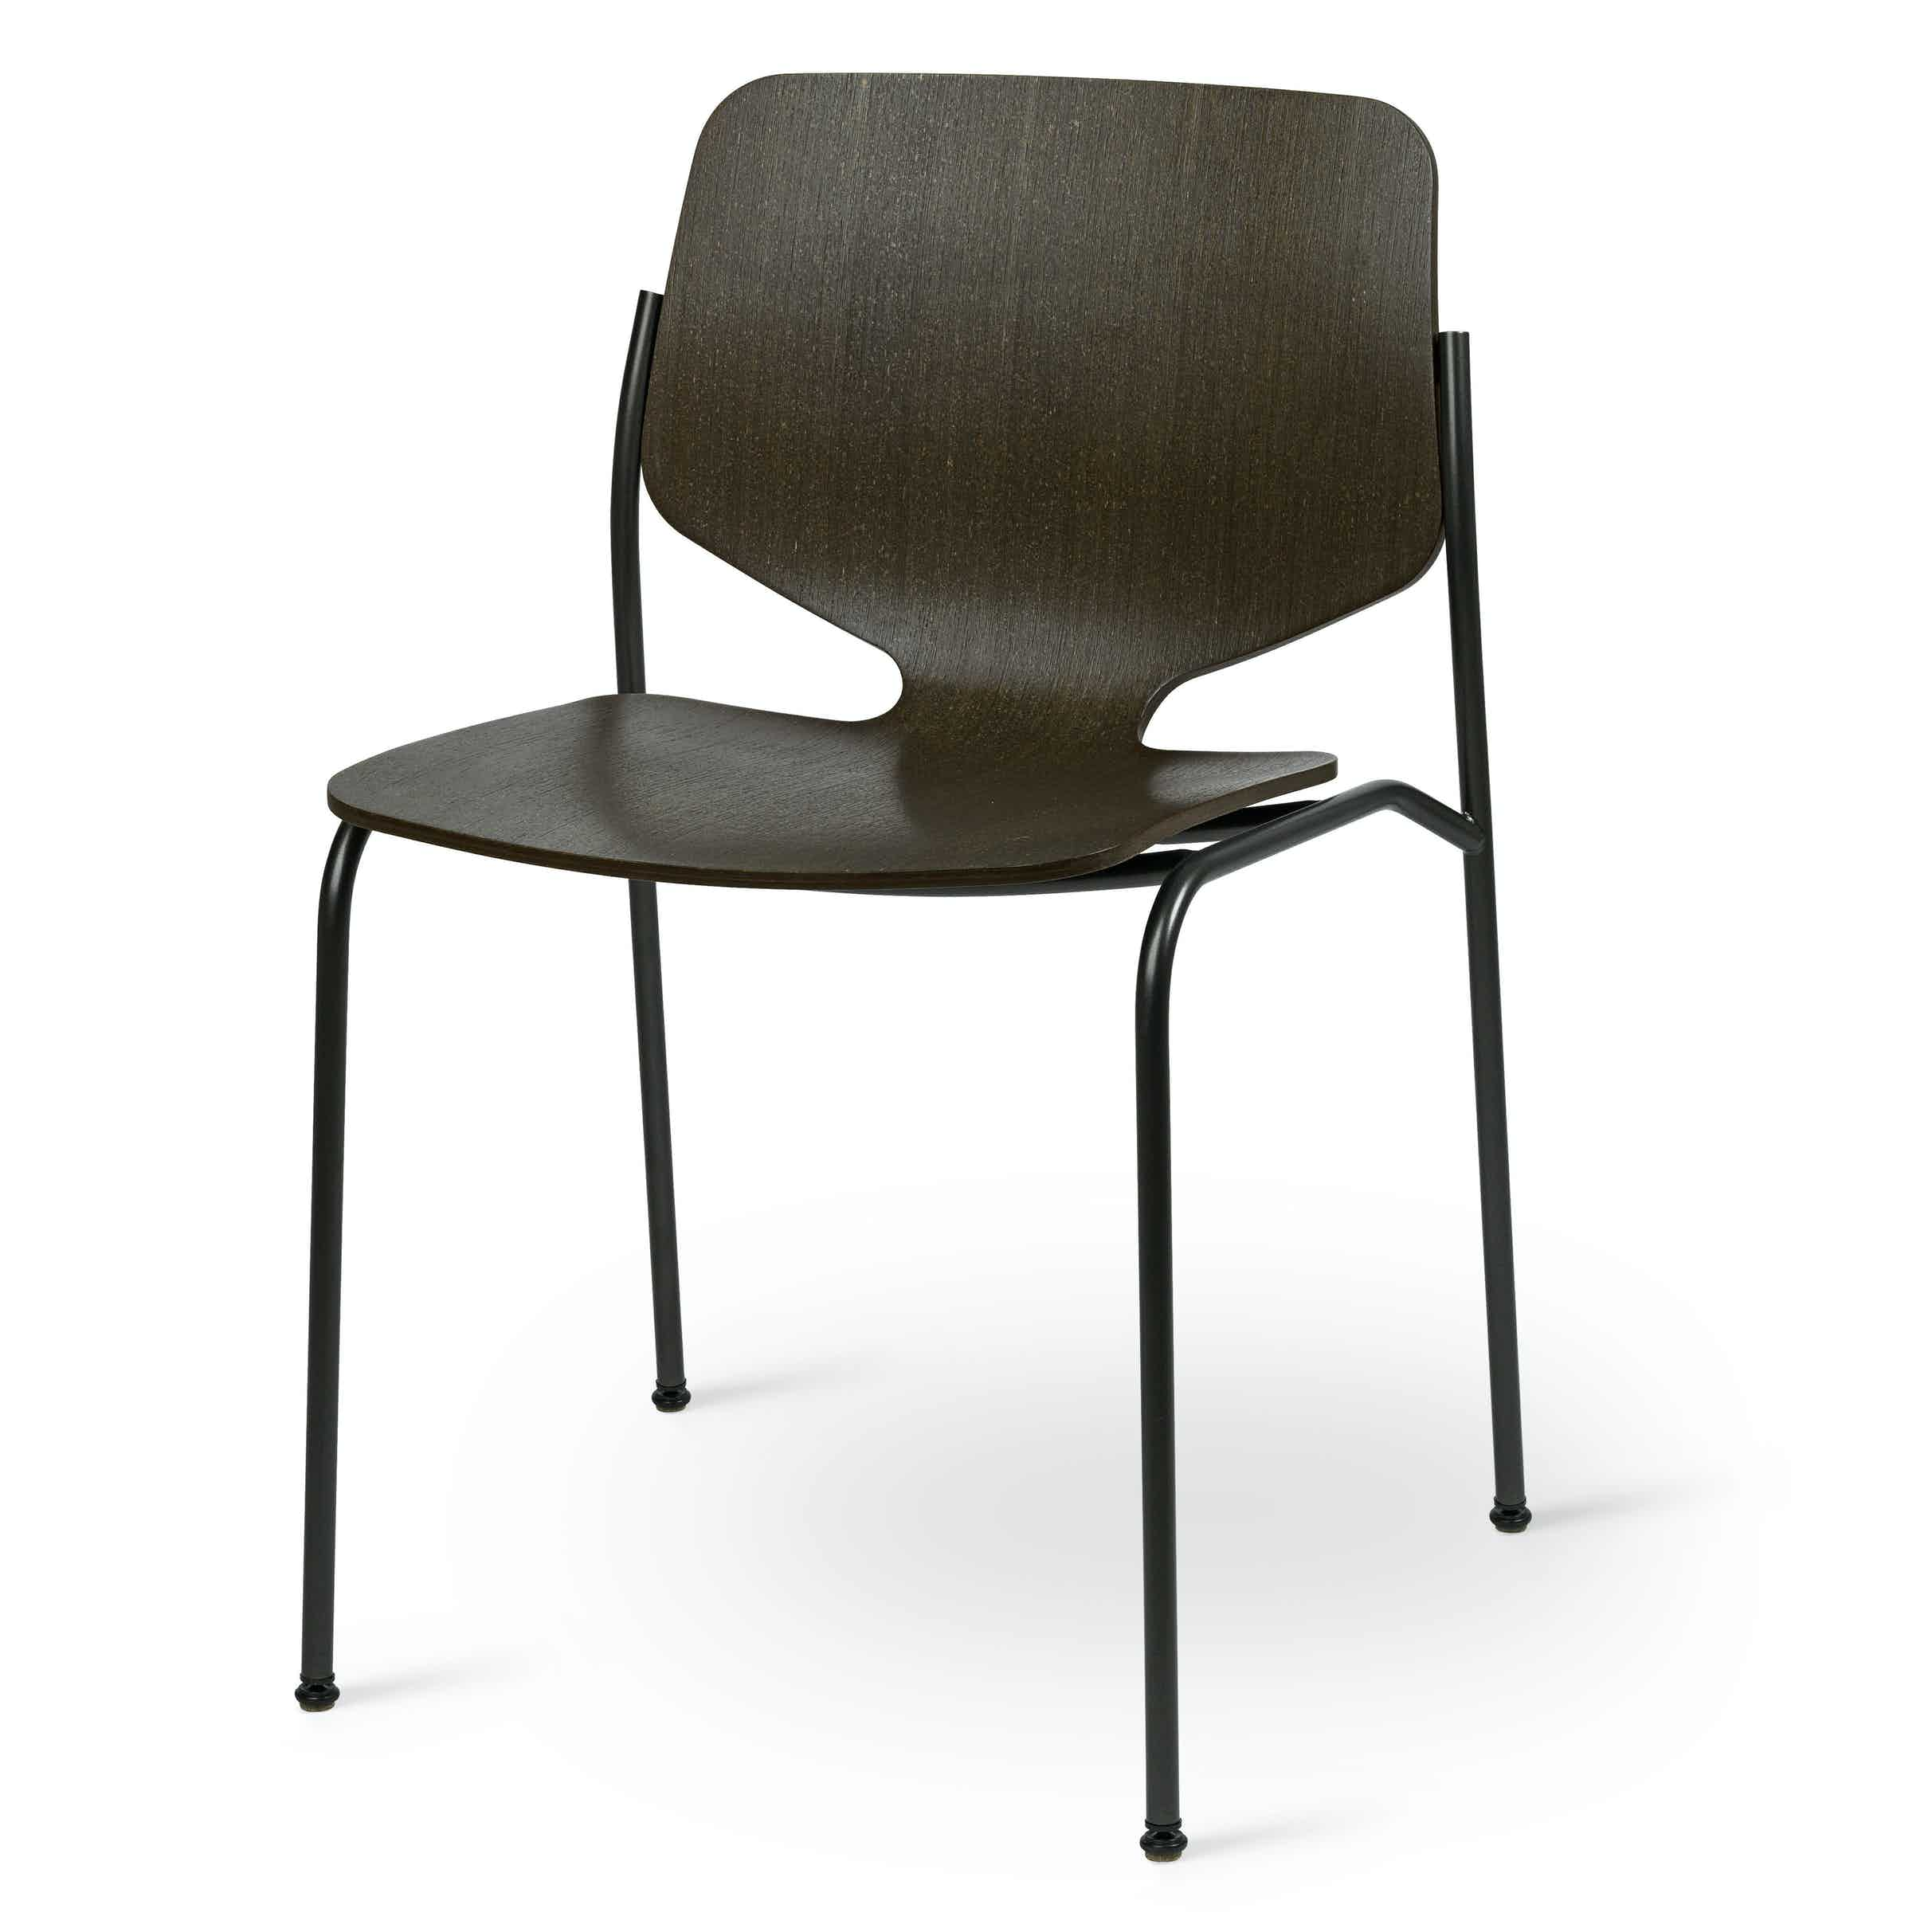 Mater design nova chair black angle haute living